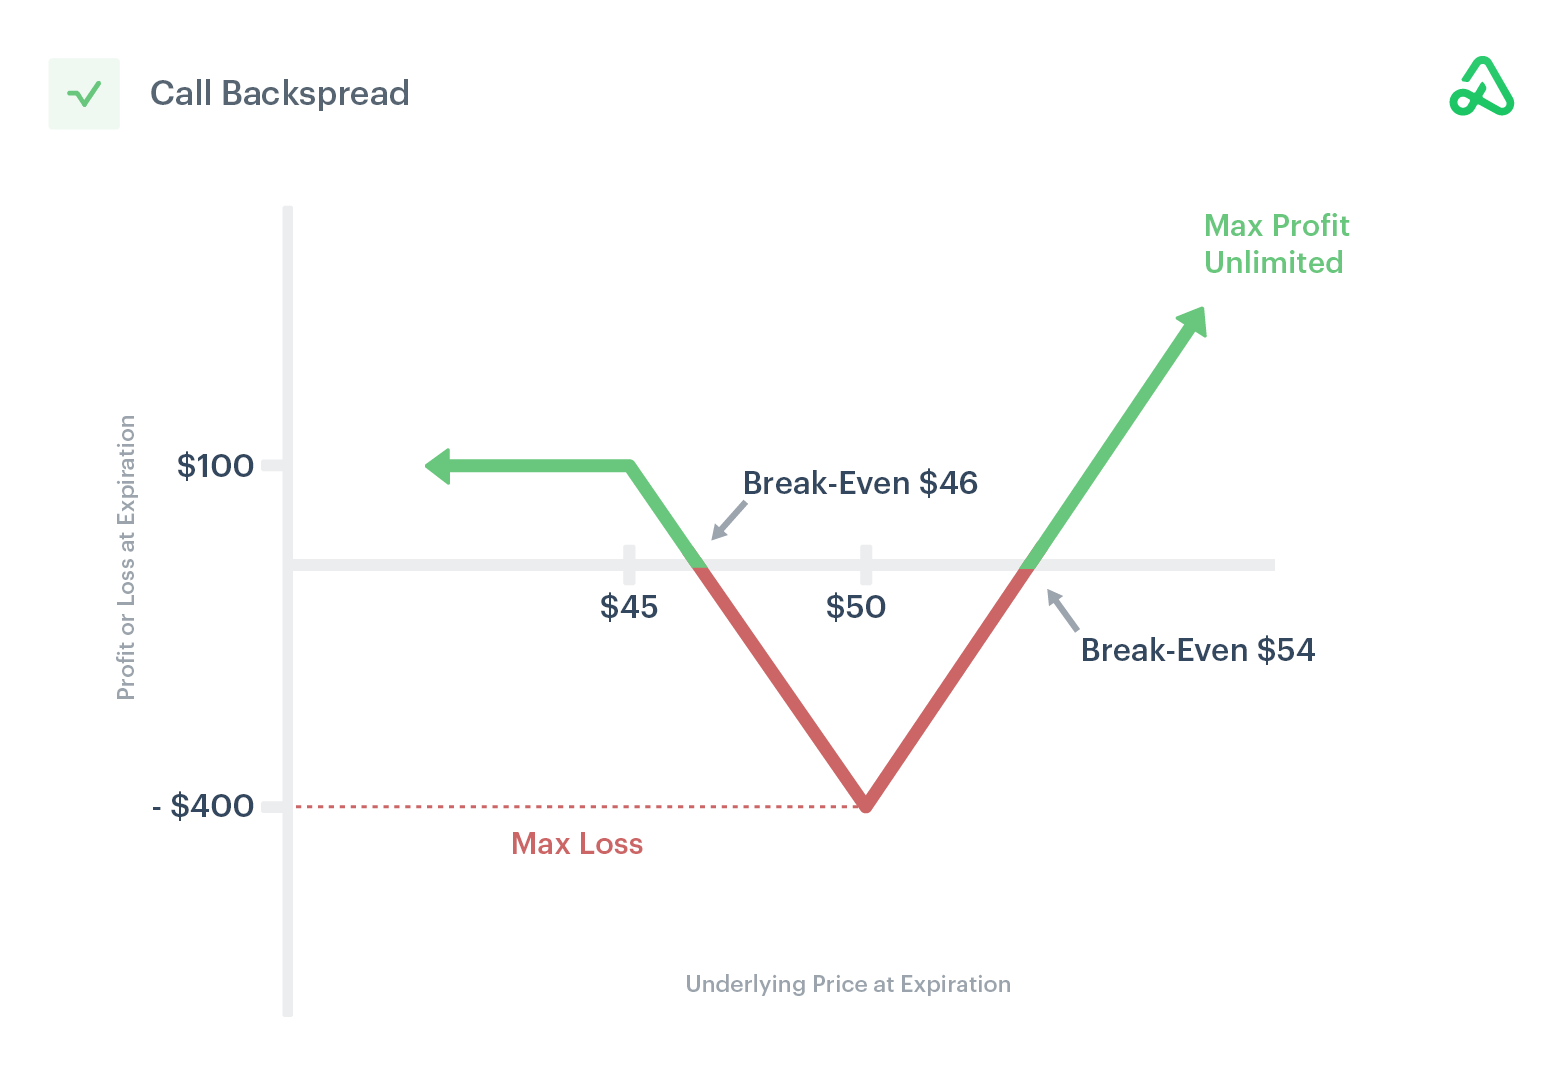 Image of call backspread payoff diagram showing max profit, max loss, and break-even points